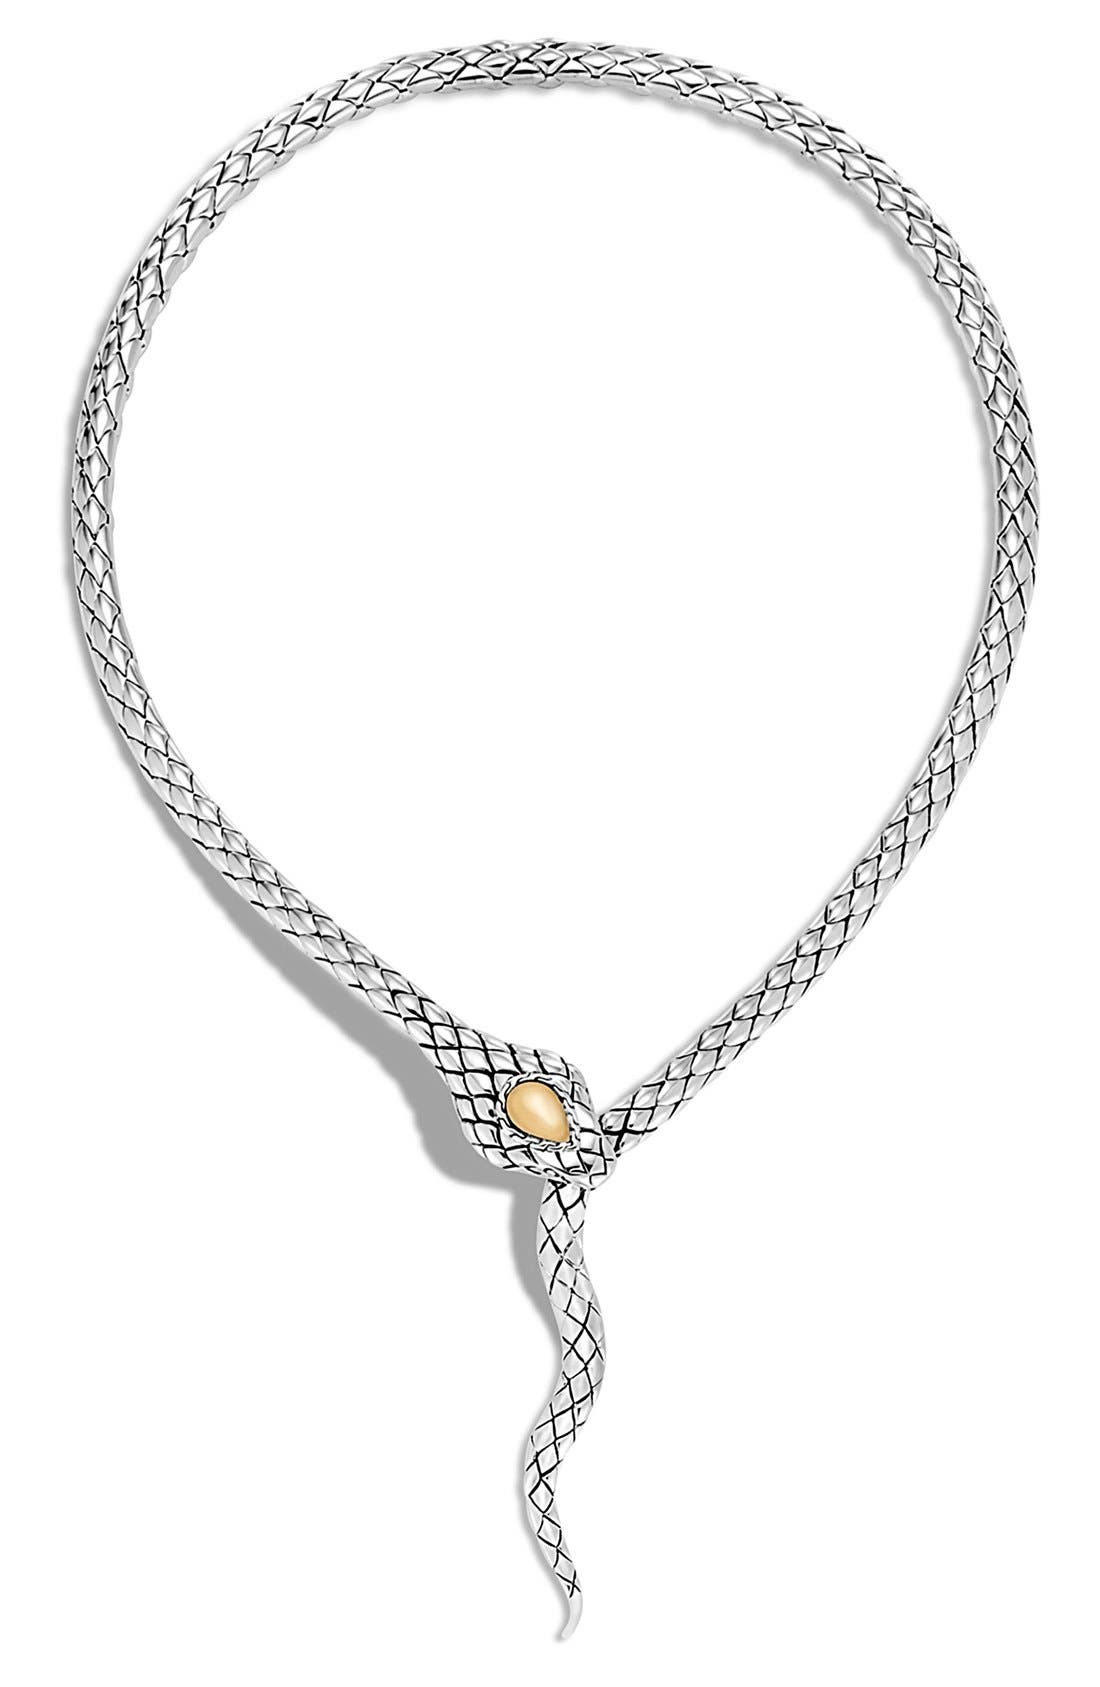 Legends Drop Necklace,                         Main,                         color, SILVER/ GOLD